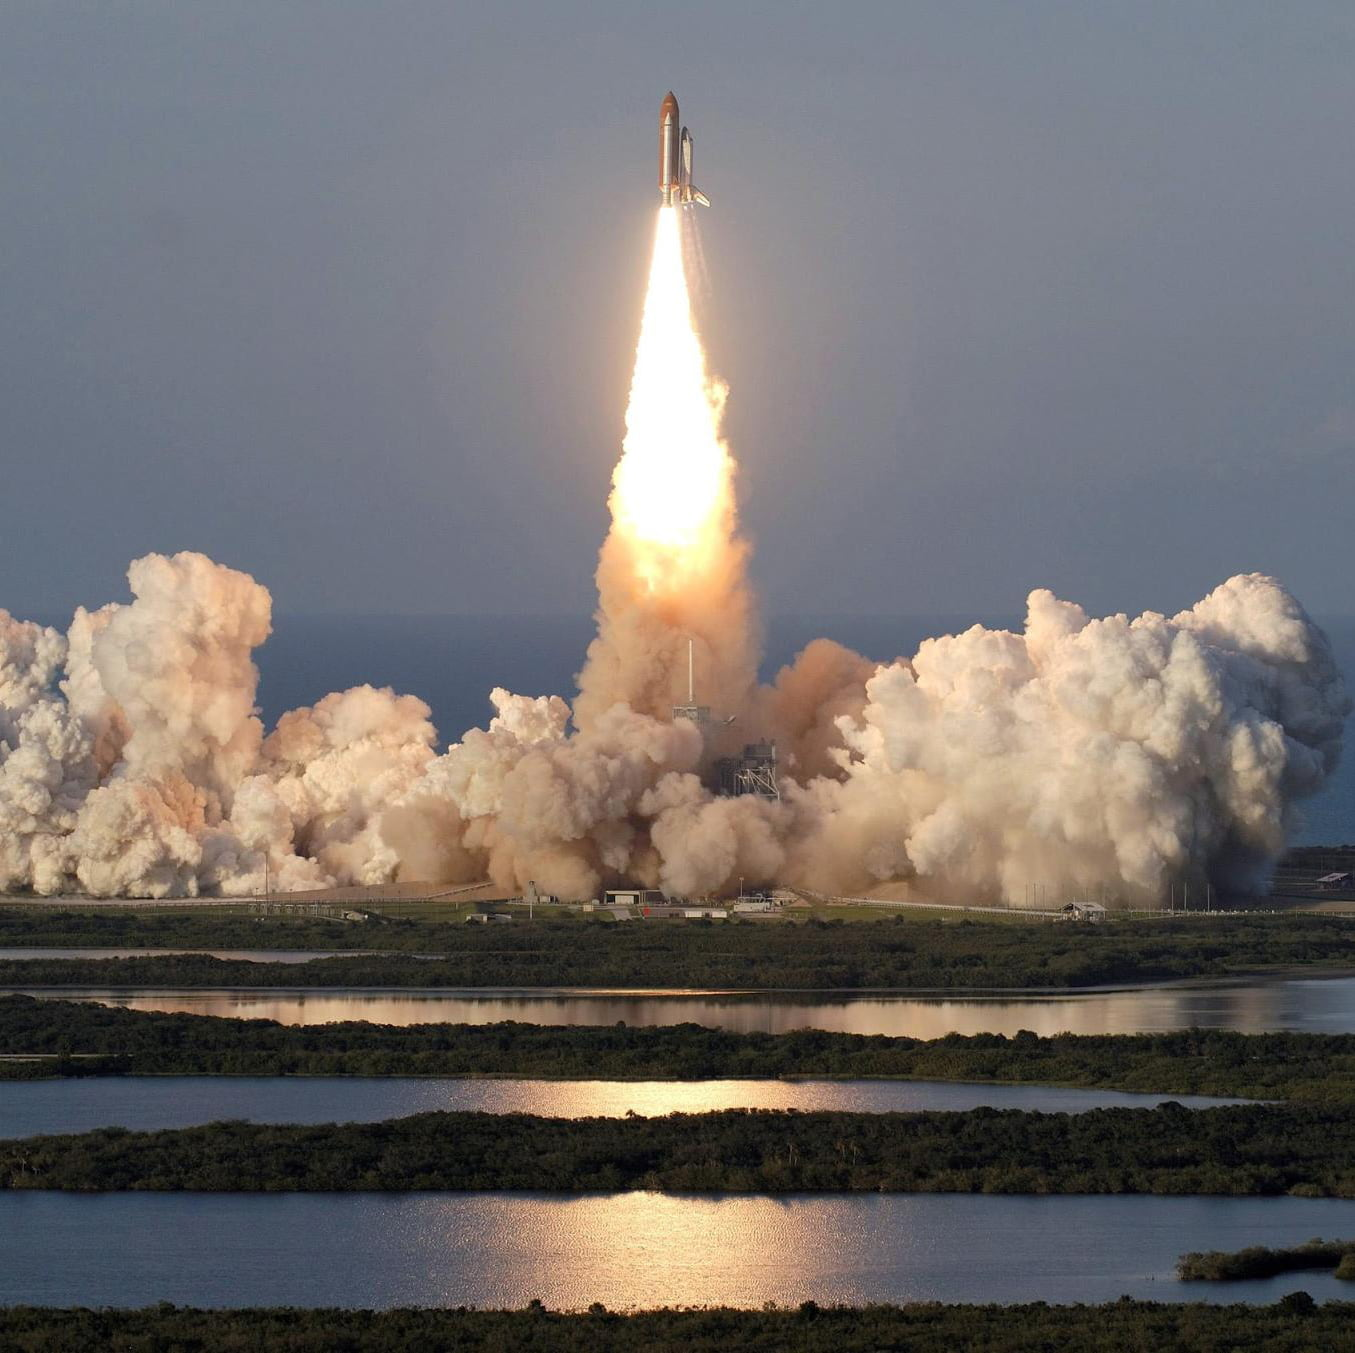 Space shuttle initial launch from pad